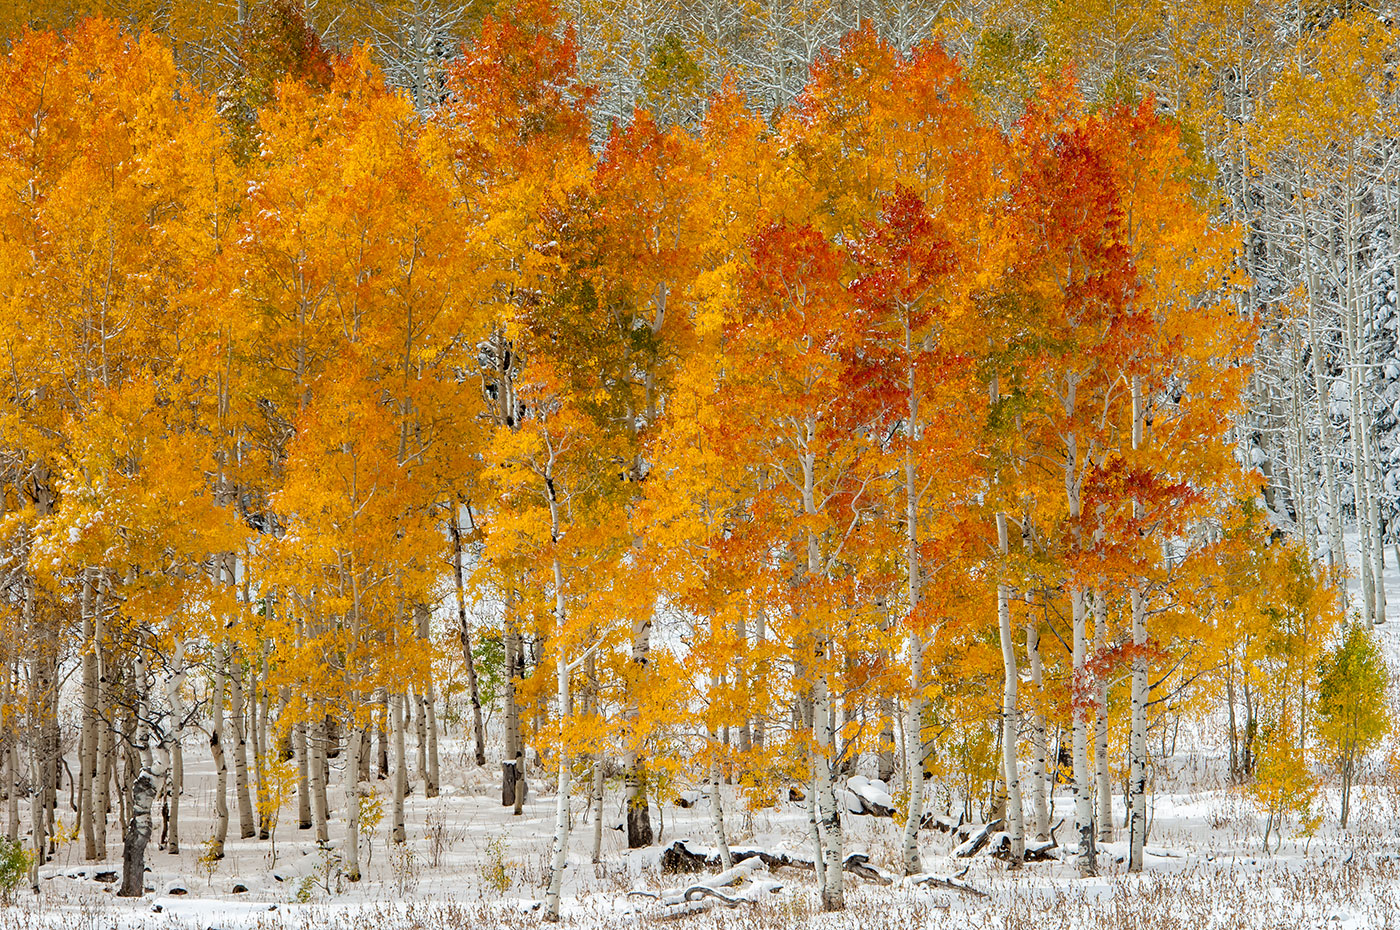 Autumn in the Uinta Mountains of UT - Image #3-5531